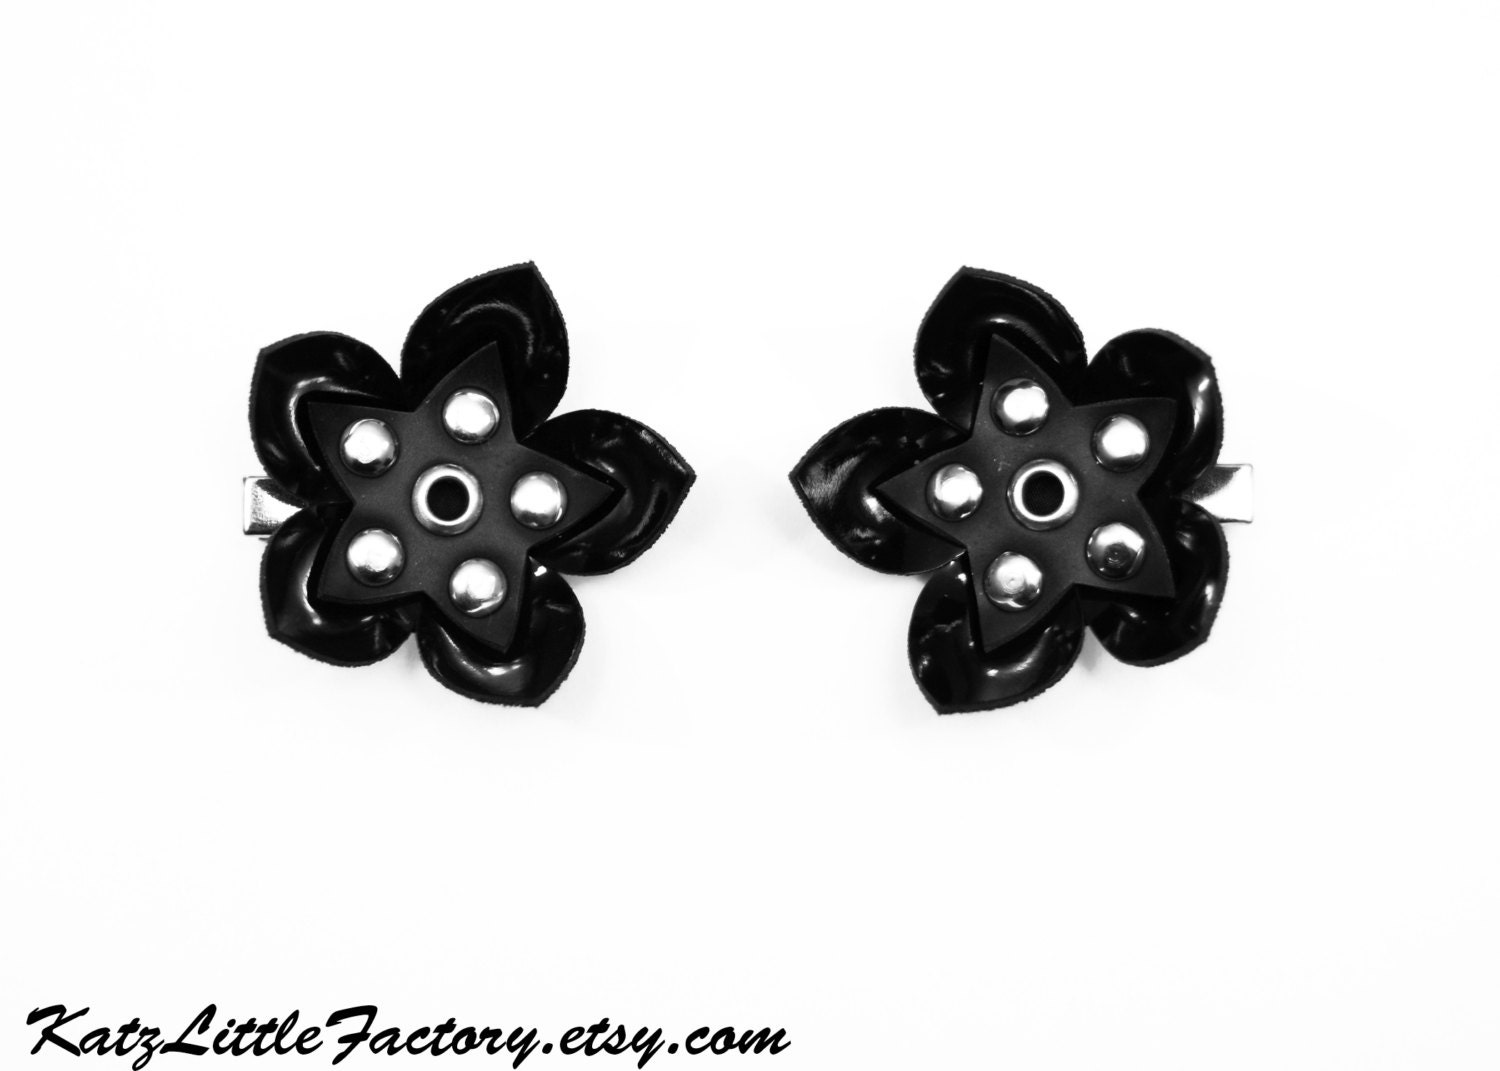 Pair Small Cyber Flower Hair Clips Shiny And Matt Black Pvc